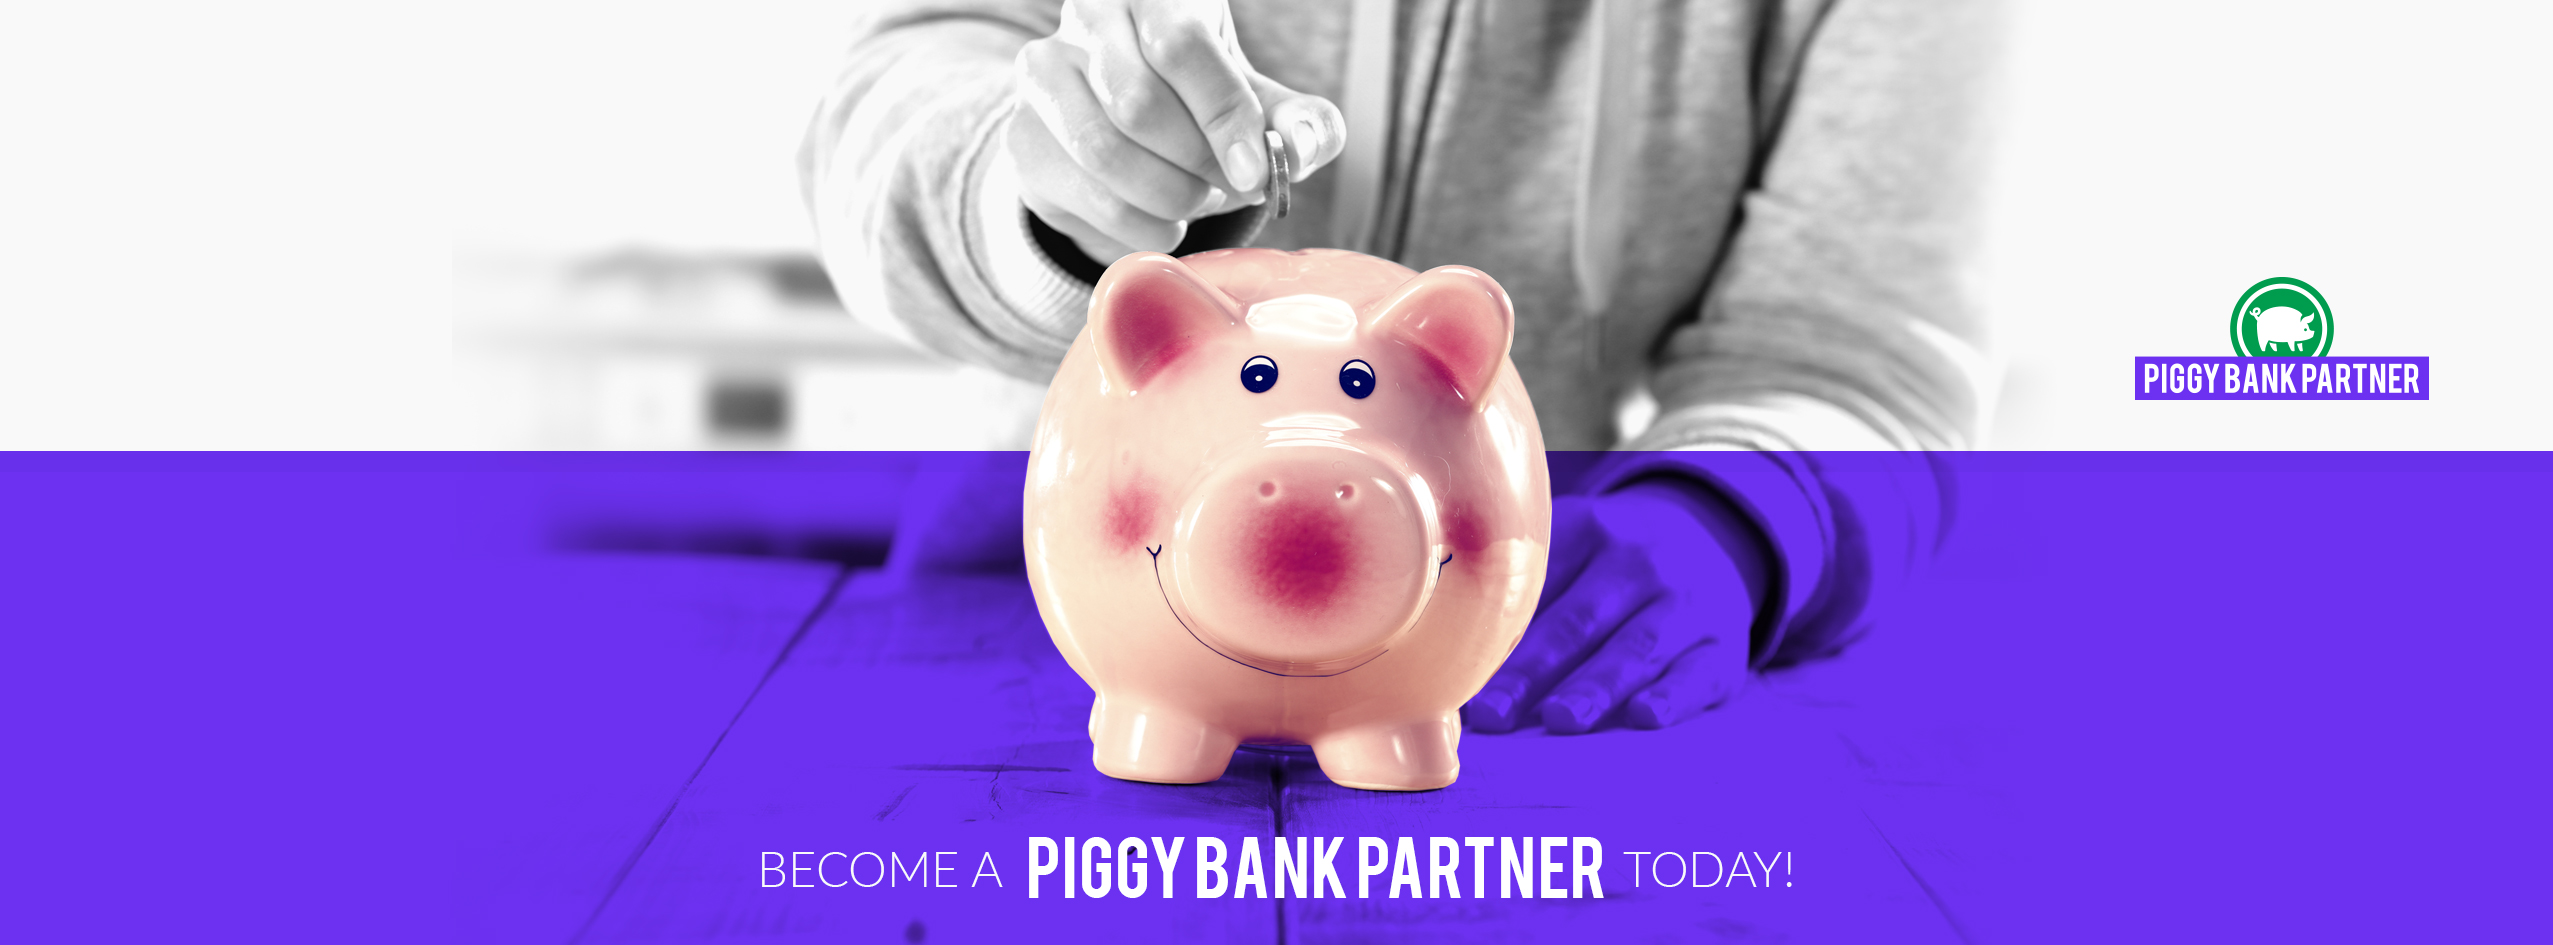 FB-Cover-Piggy-Bank-Partner